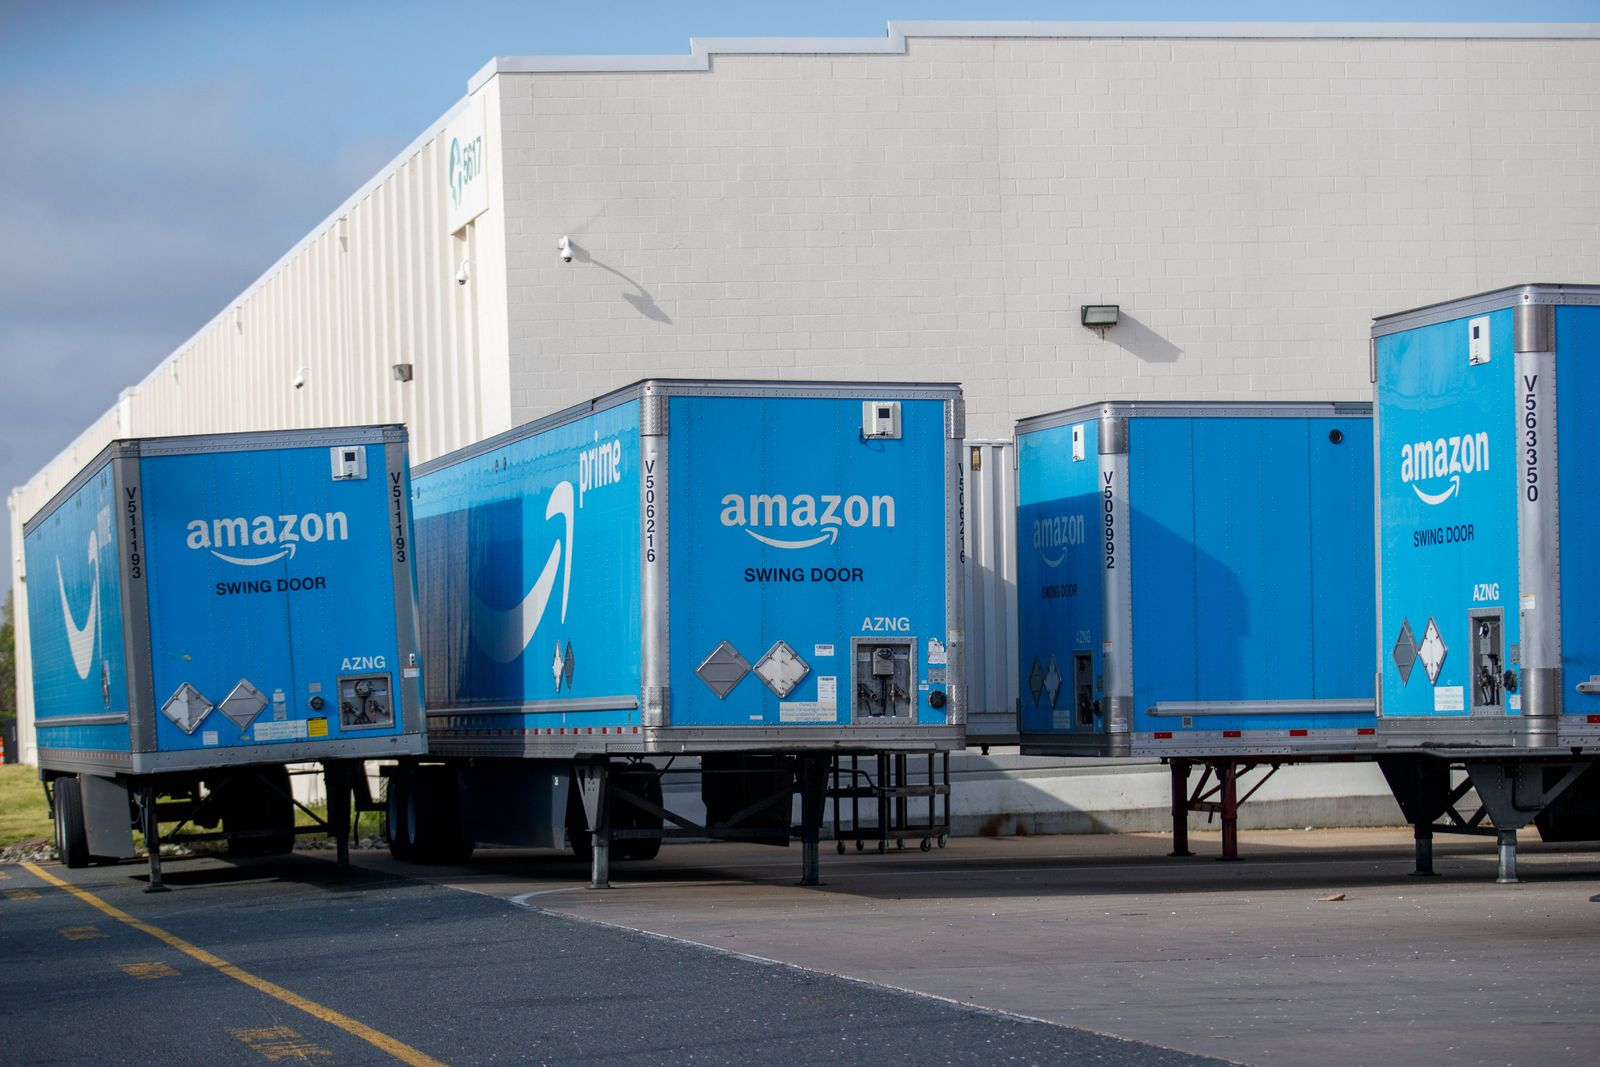 Amazon hiring 100,000 new warehouse and delivery workers to help the company fill orders as Americans stay at home during the COVID-19 coronavirus pandemic., Springfield, USA - 30 Mar 2020